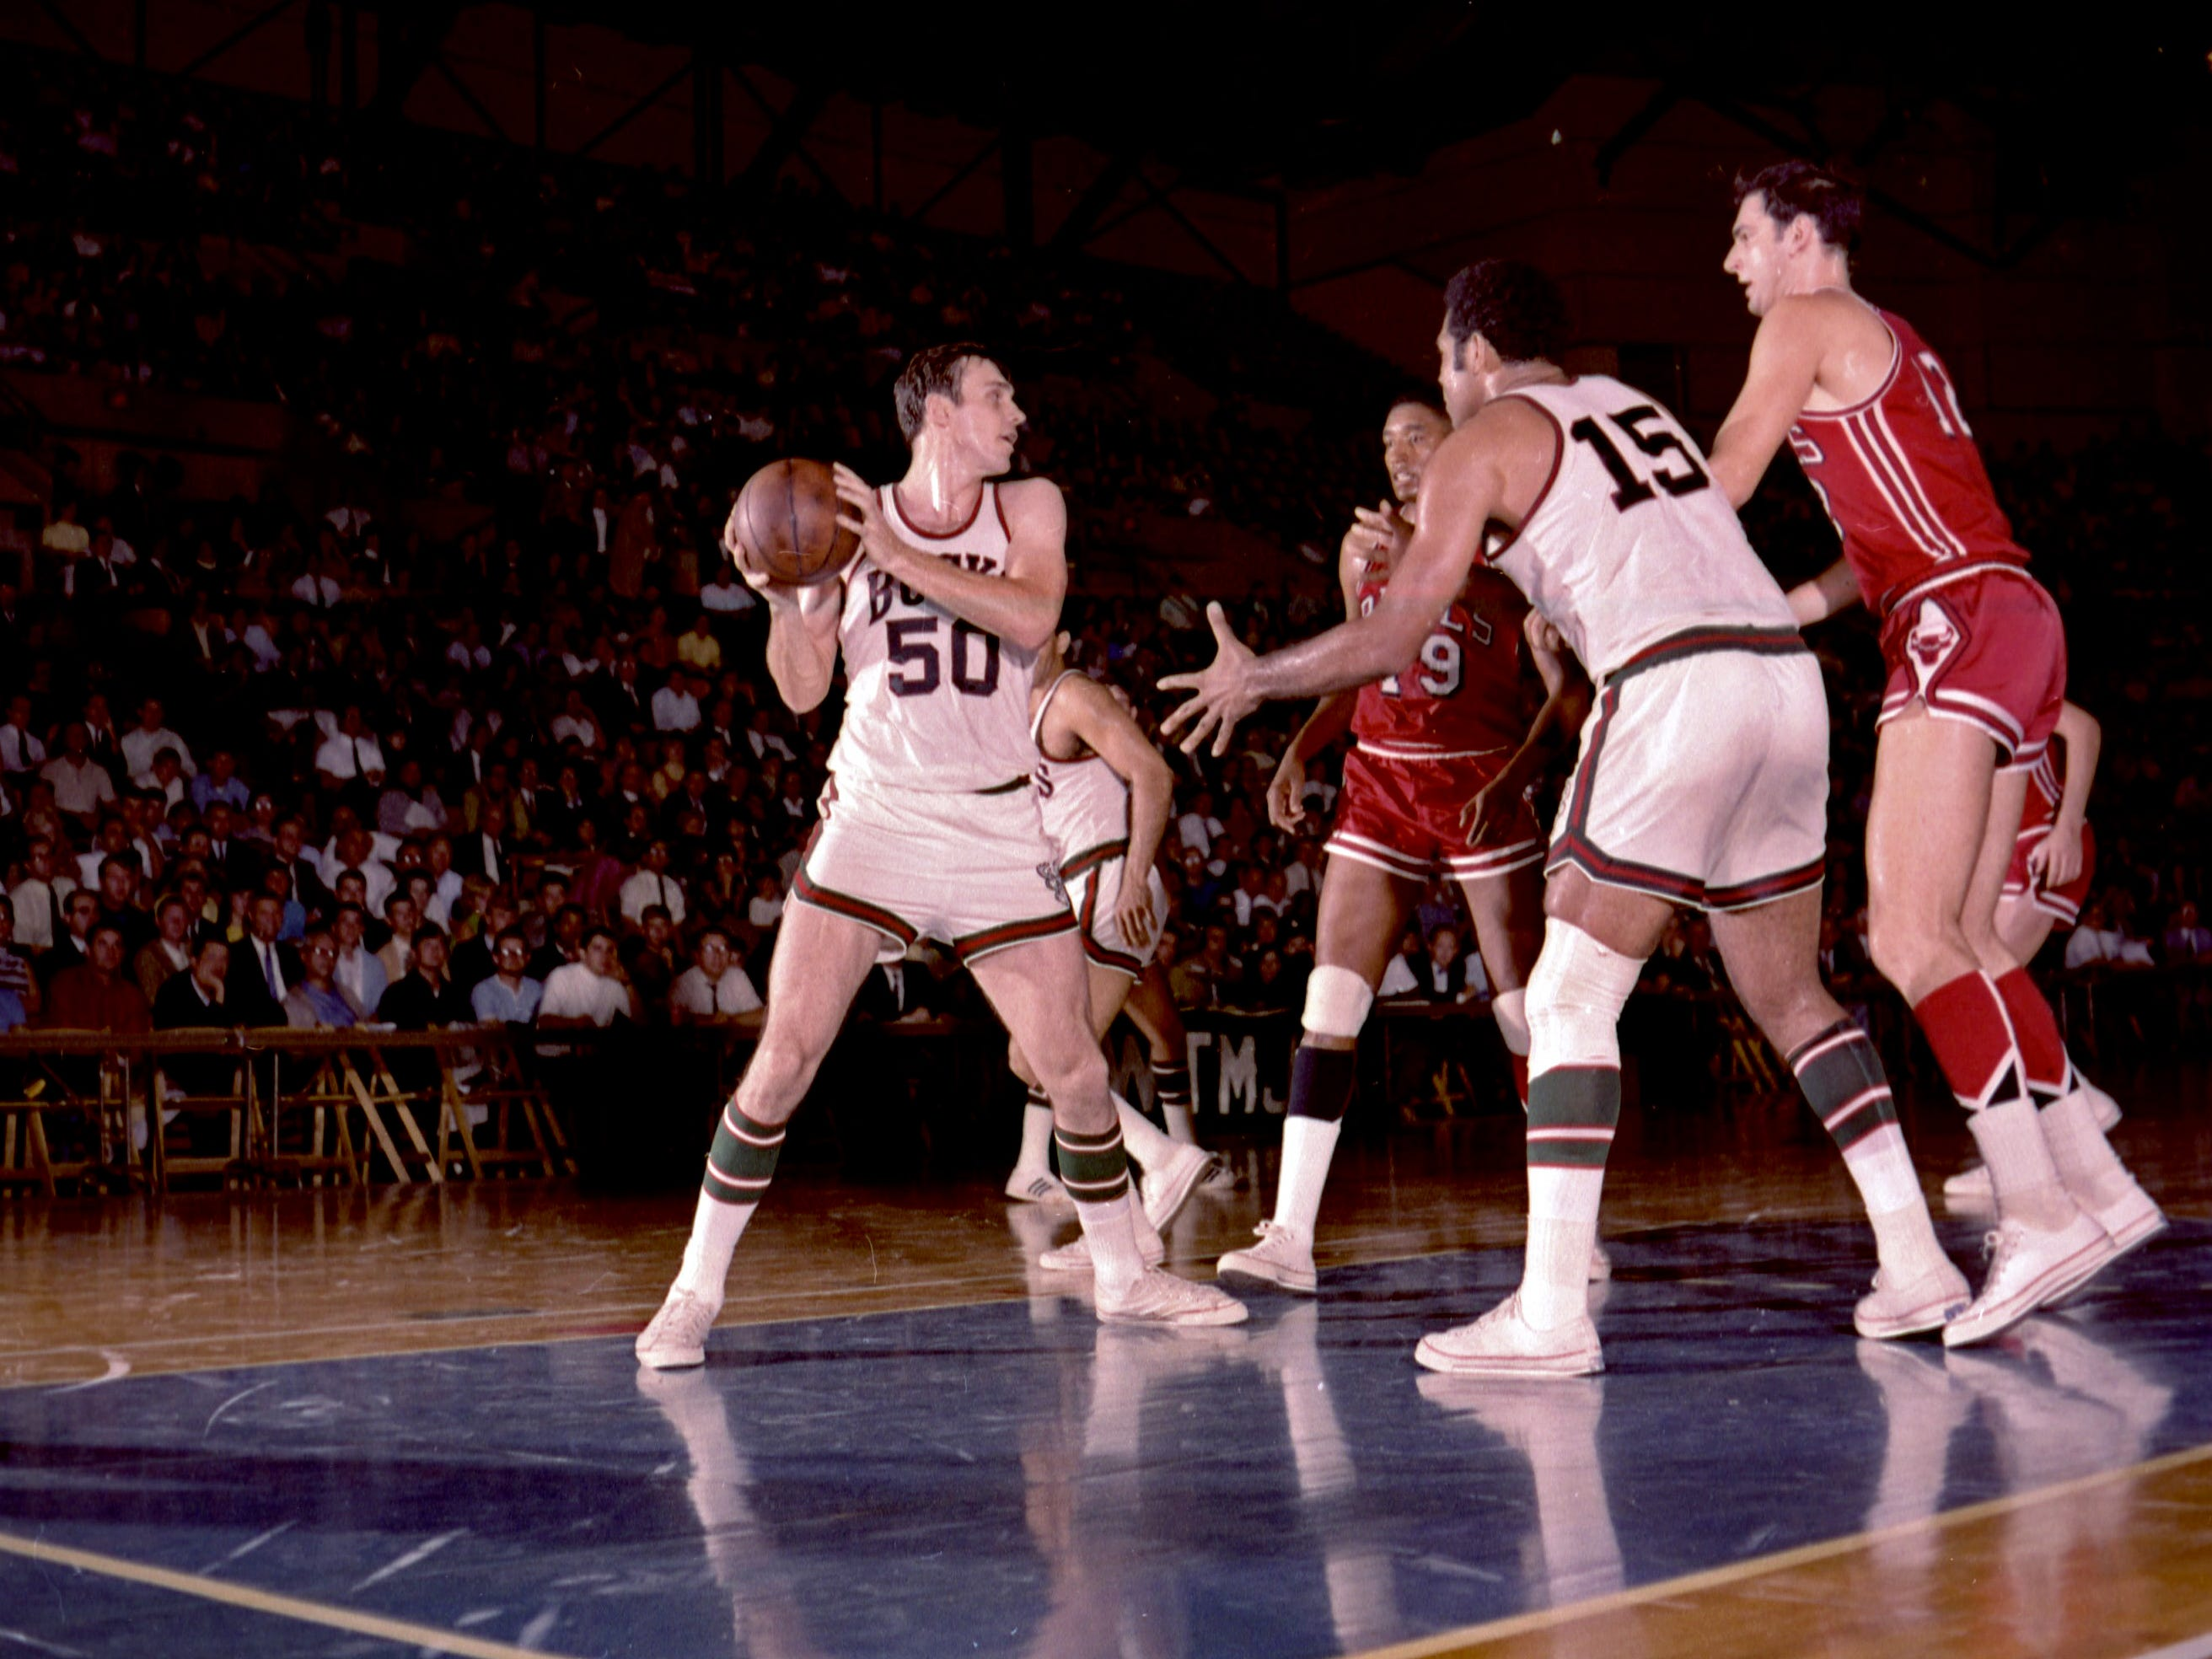 The Bucks' Len Chappell (50) comes up with a rebound during Milwaukee's first regular-season game in the NBA on Oct. 16, 1968, against the Chicago Bulls at the Milwaukee Arena.